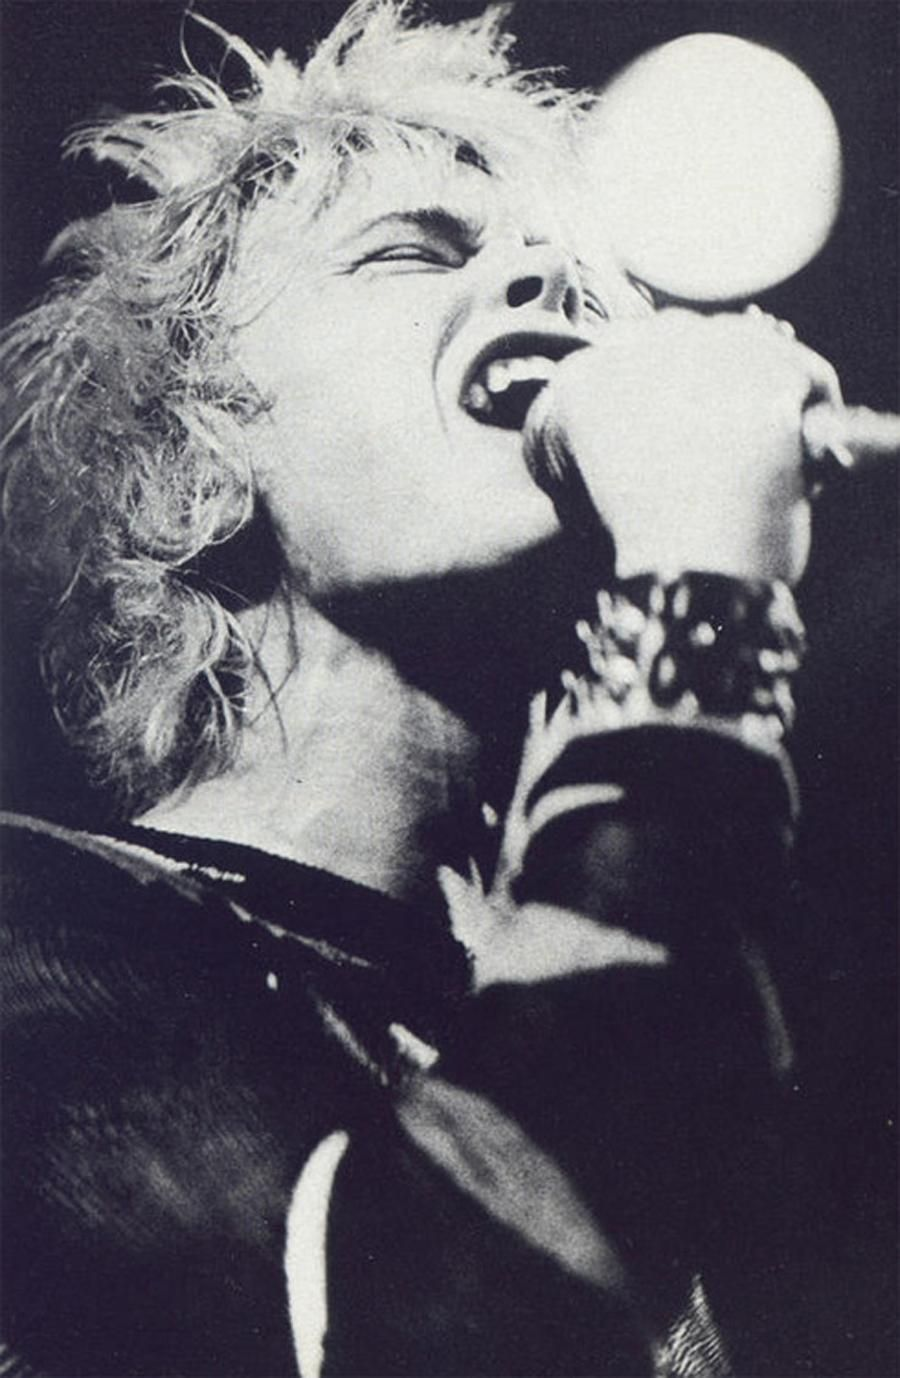 Generation X Billy Idol, Feeling Magazine, 1978